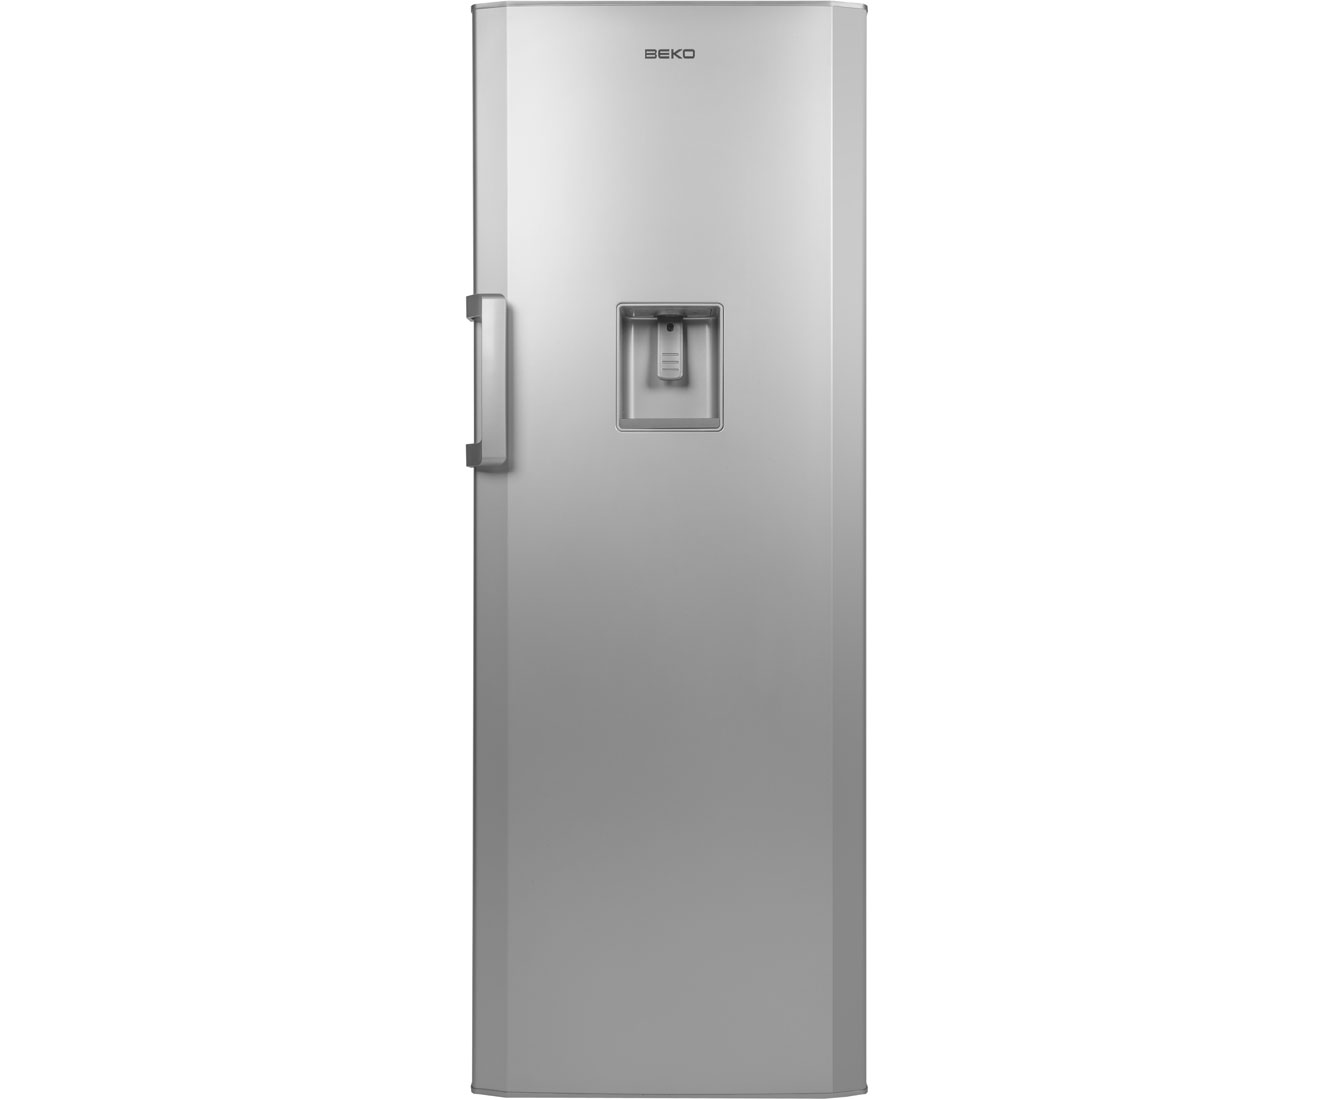 Beko TLDC671S Fridge - Silver